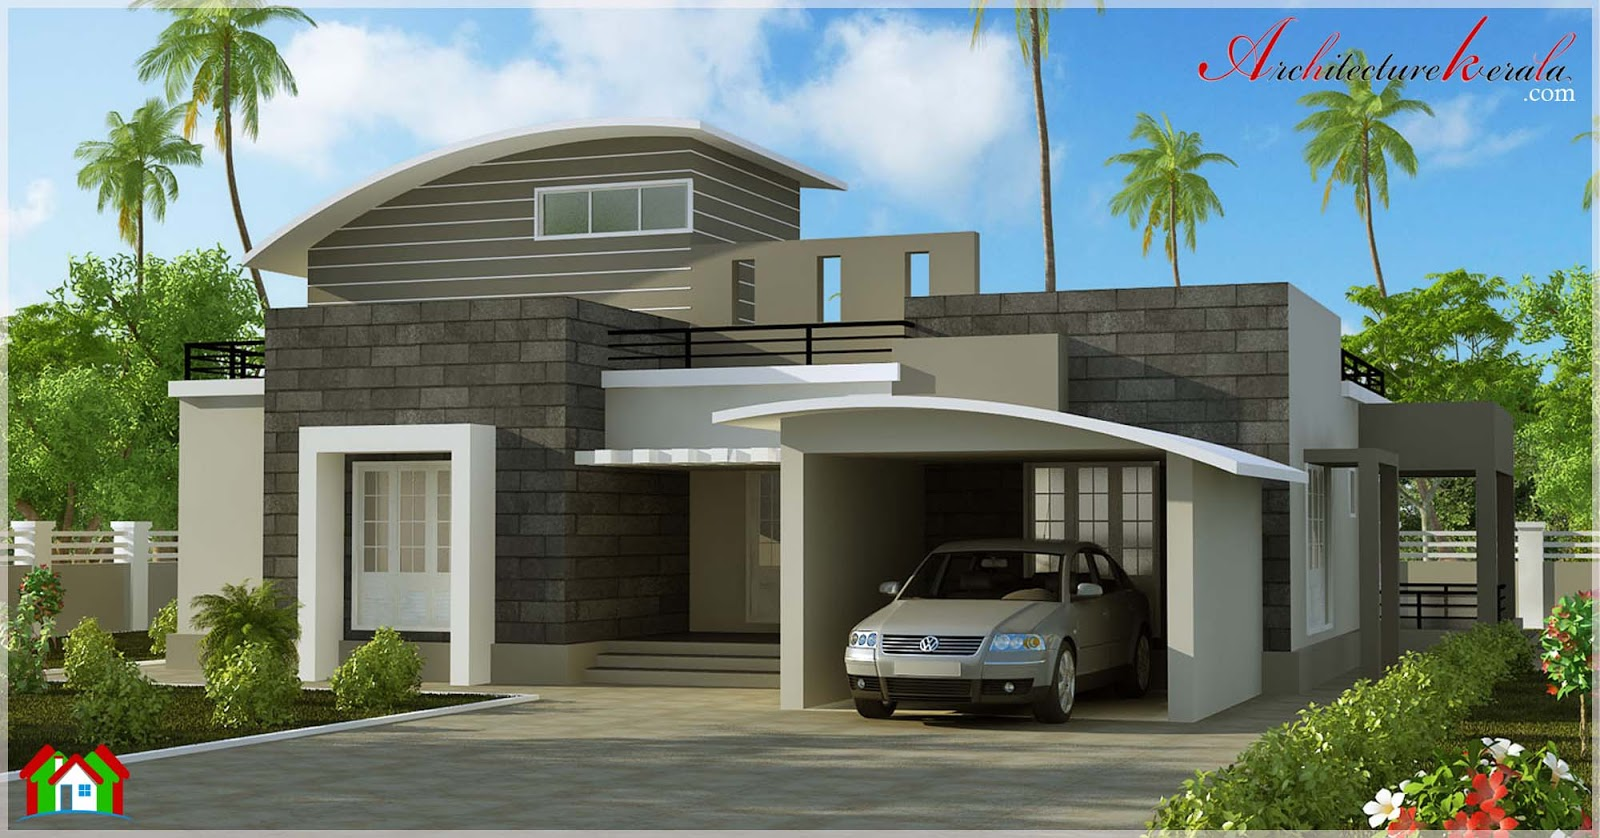 Contemporary style villa elevation architecture kerala for Contemporary house builders